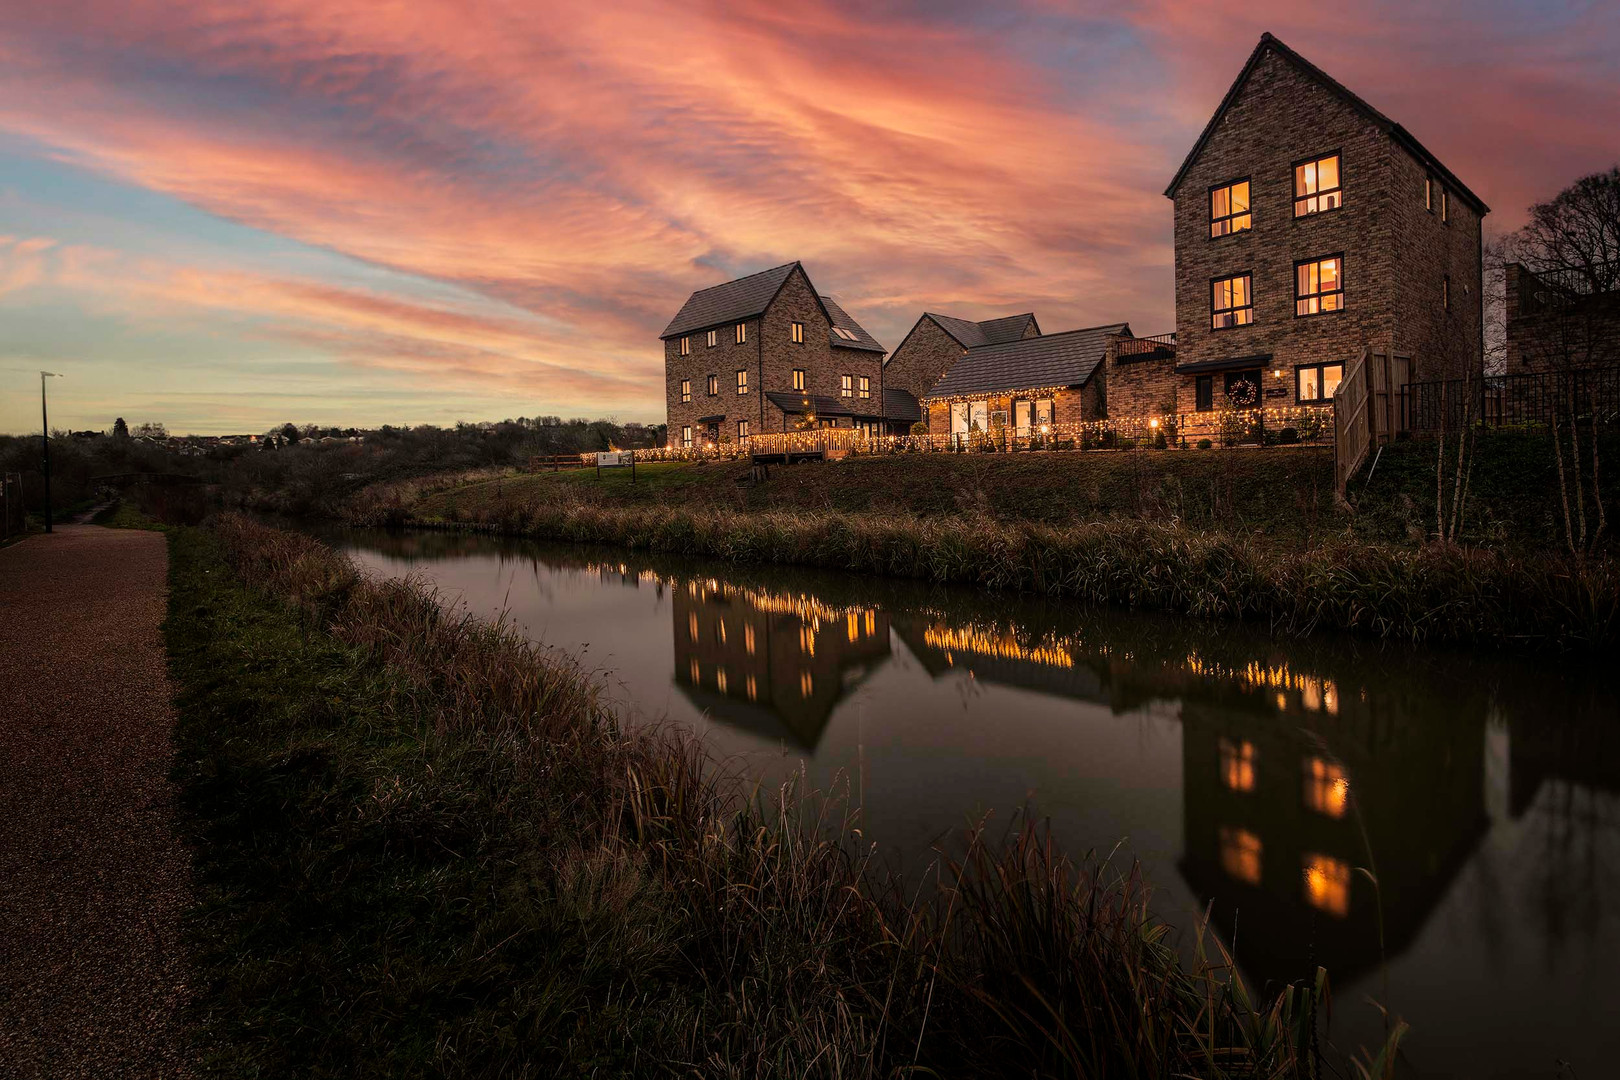 A evening architectural picture of a housing development